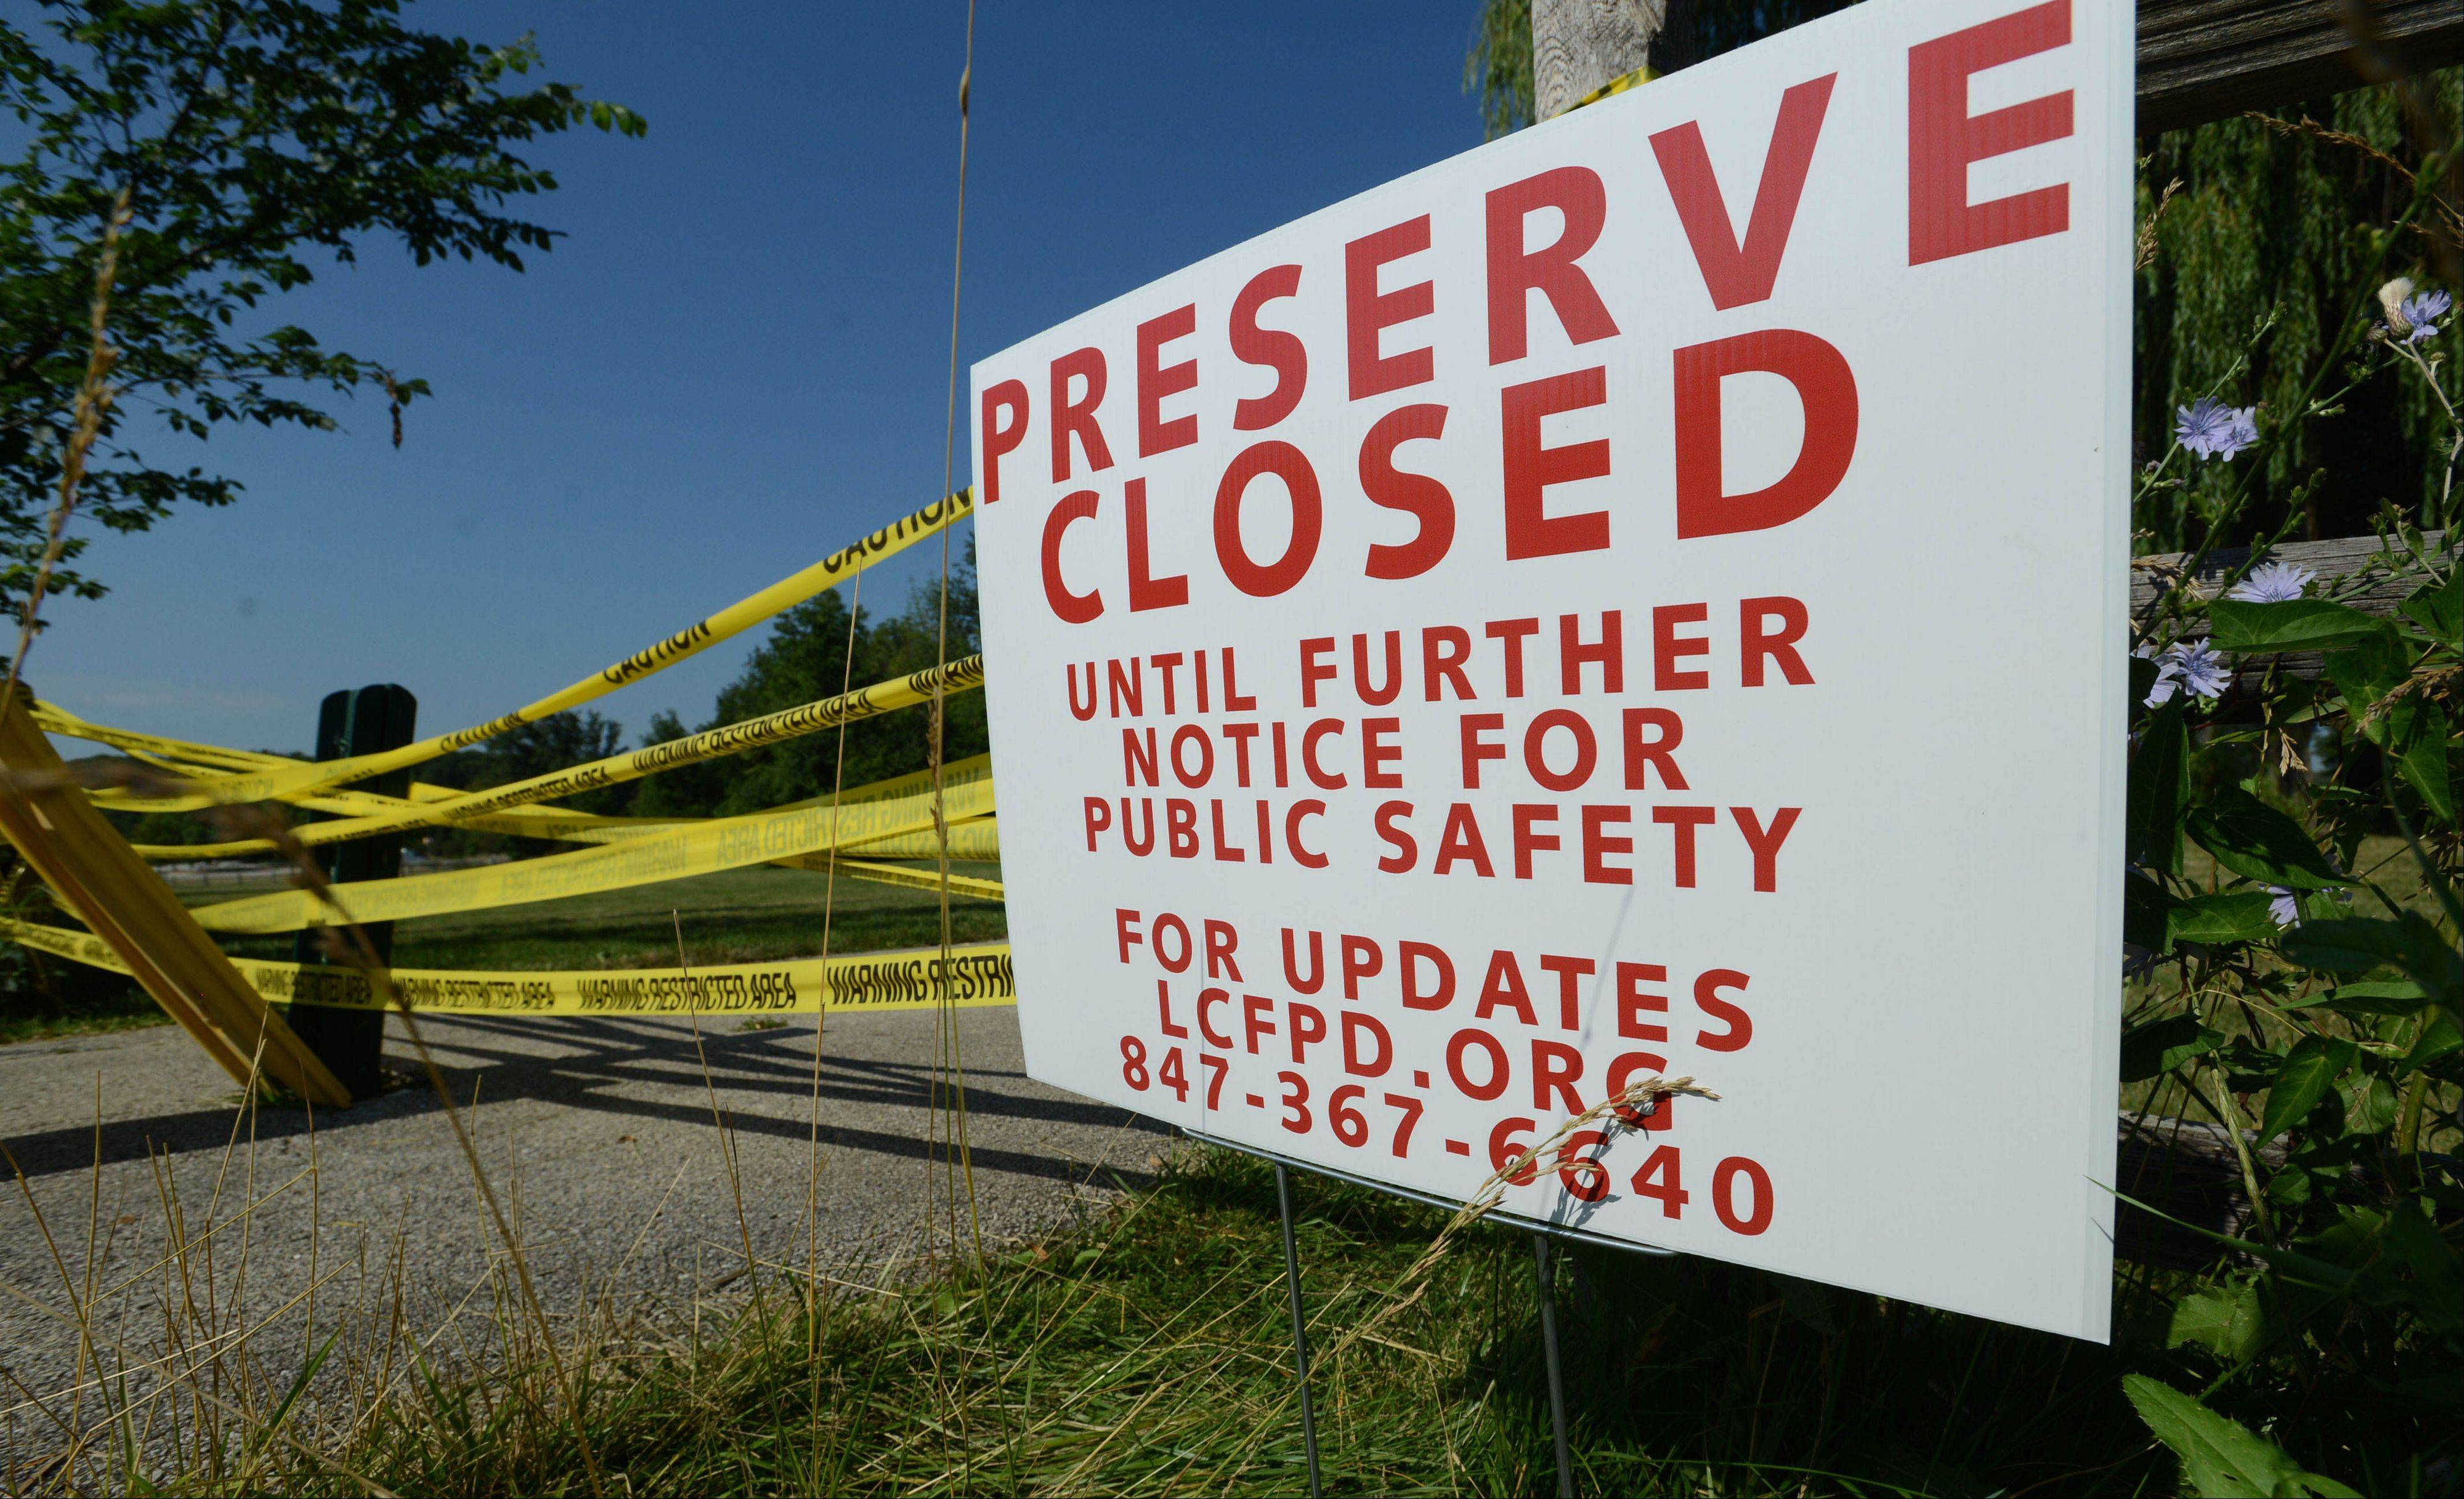 Independence Grove Forest Preserve near Libertyville remains closed due to a bomb threat. Authorities said the park will not reopen until an investigation is completed.